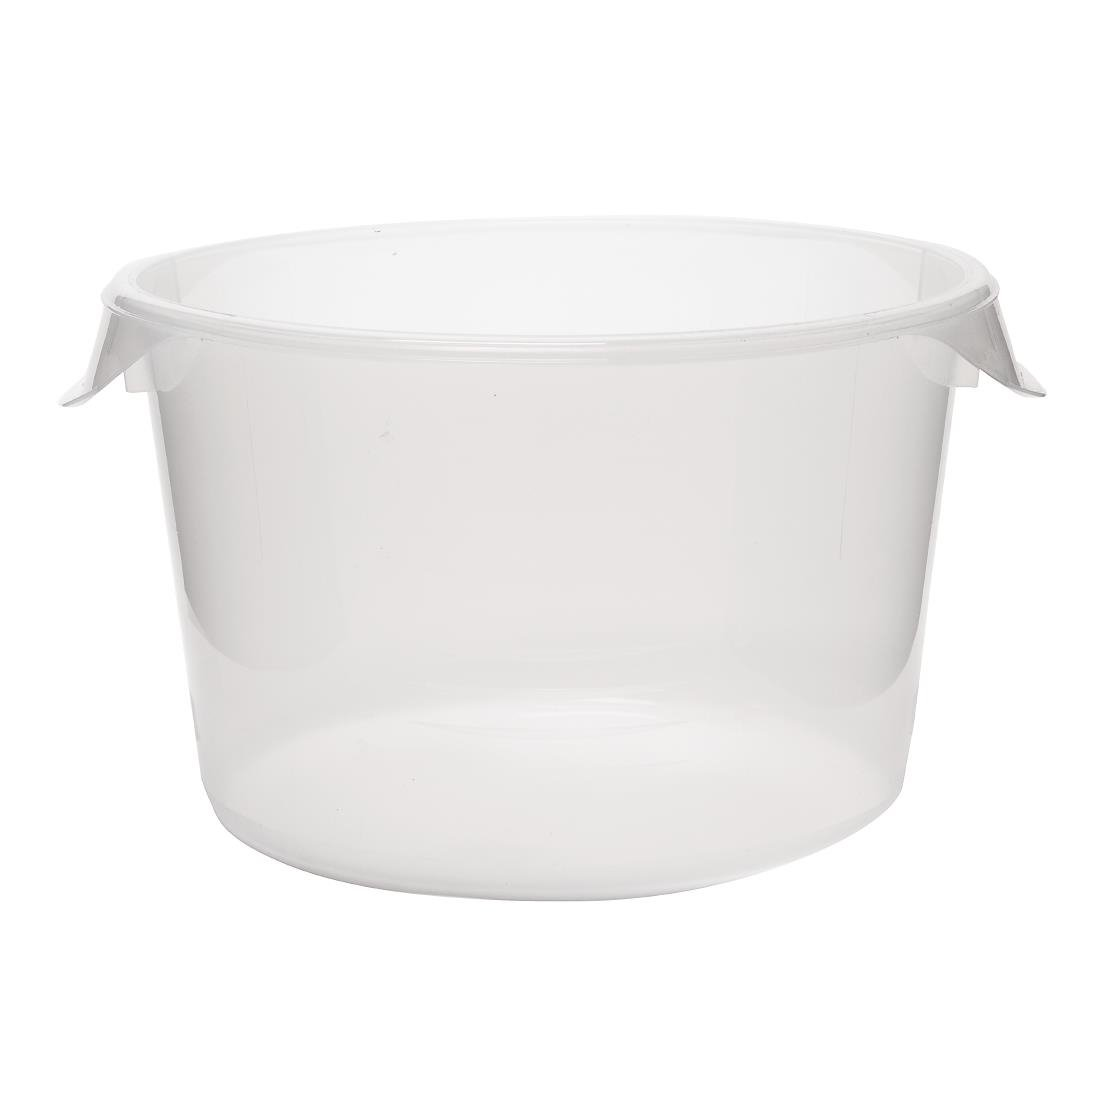 Rubbermaid Round Storage Container 115Ltr F597 Buy Online at